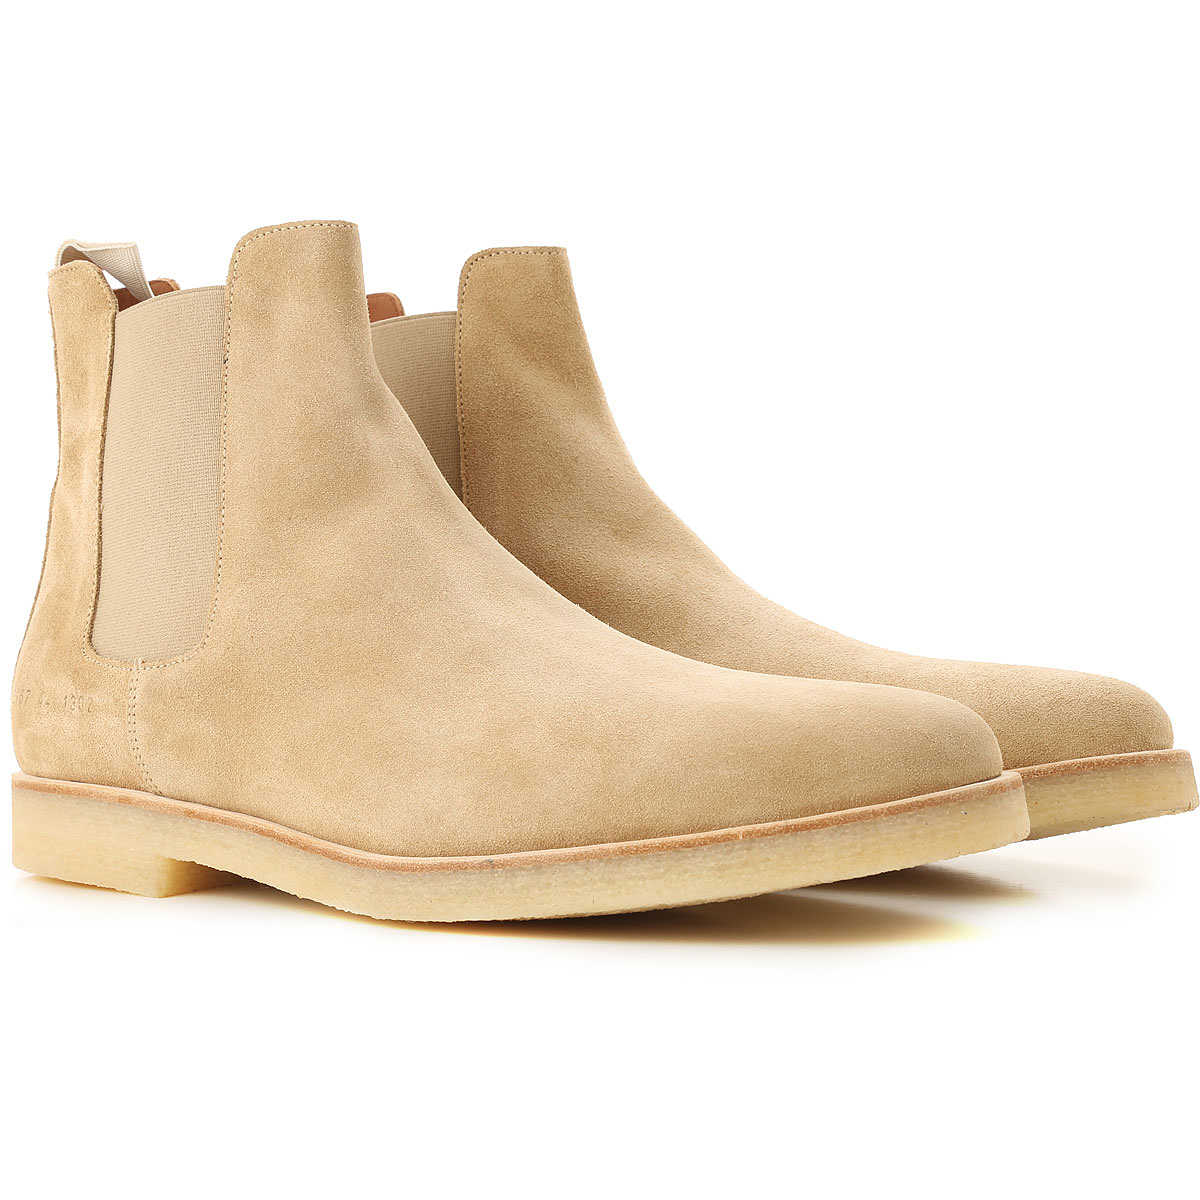 Common Projects Boots for Men Booties On Sale DK - GOOFASH - Mens BOOTS